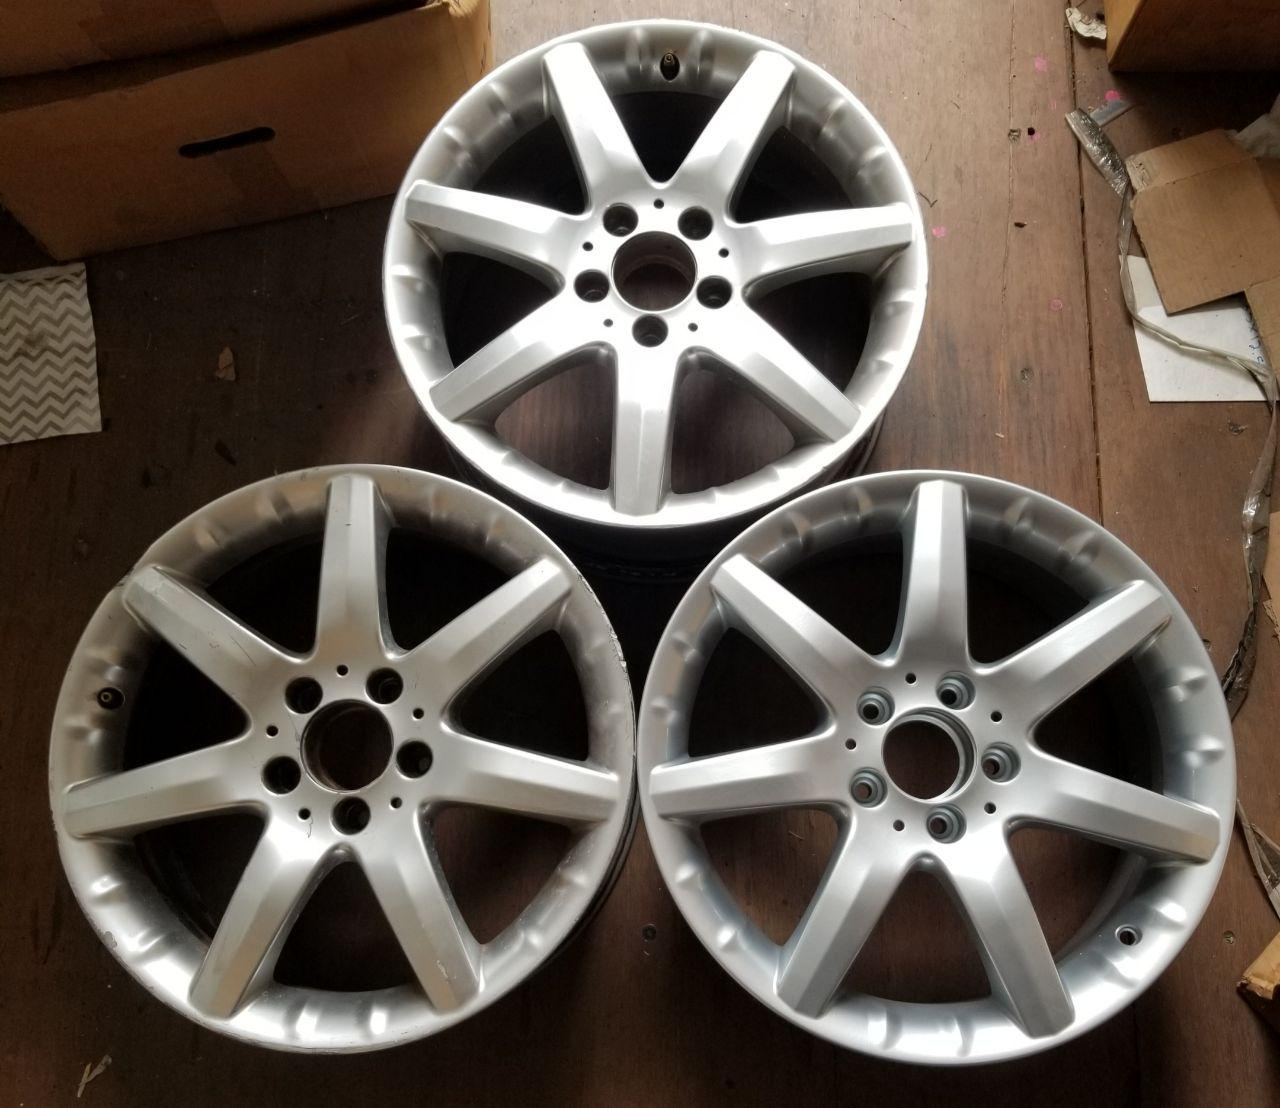 - OEM WHEELS - 2002-2005 MERCEDES C-CLASS 17x7.5 7 SPOKE Hollander #65261 /  USED